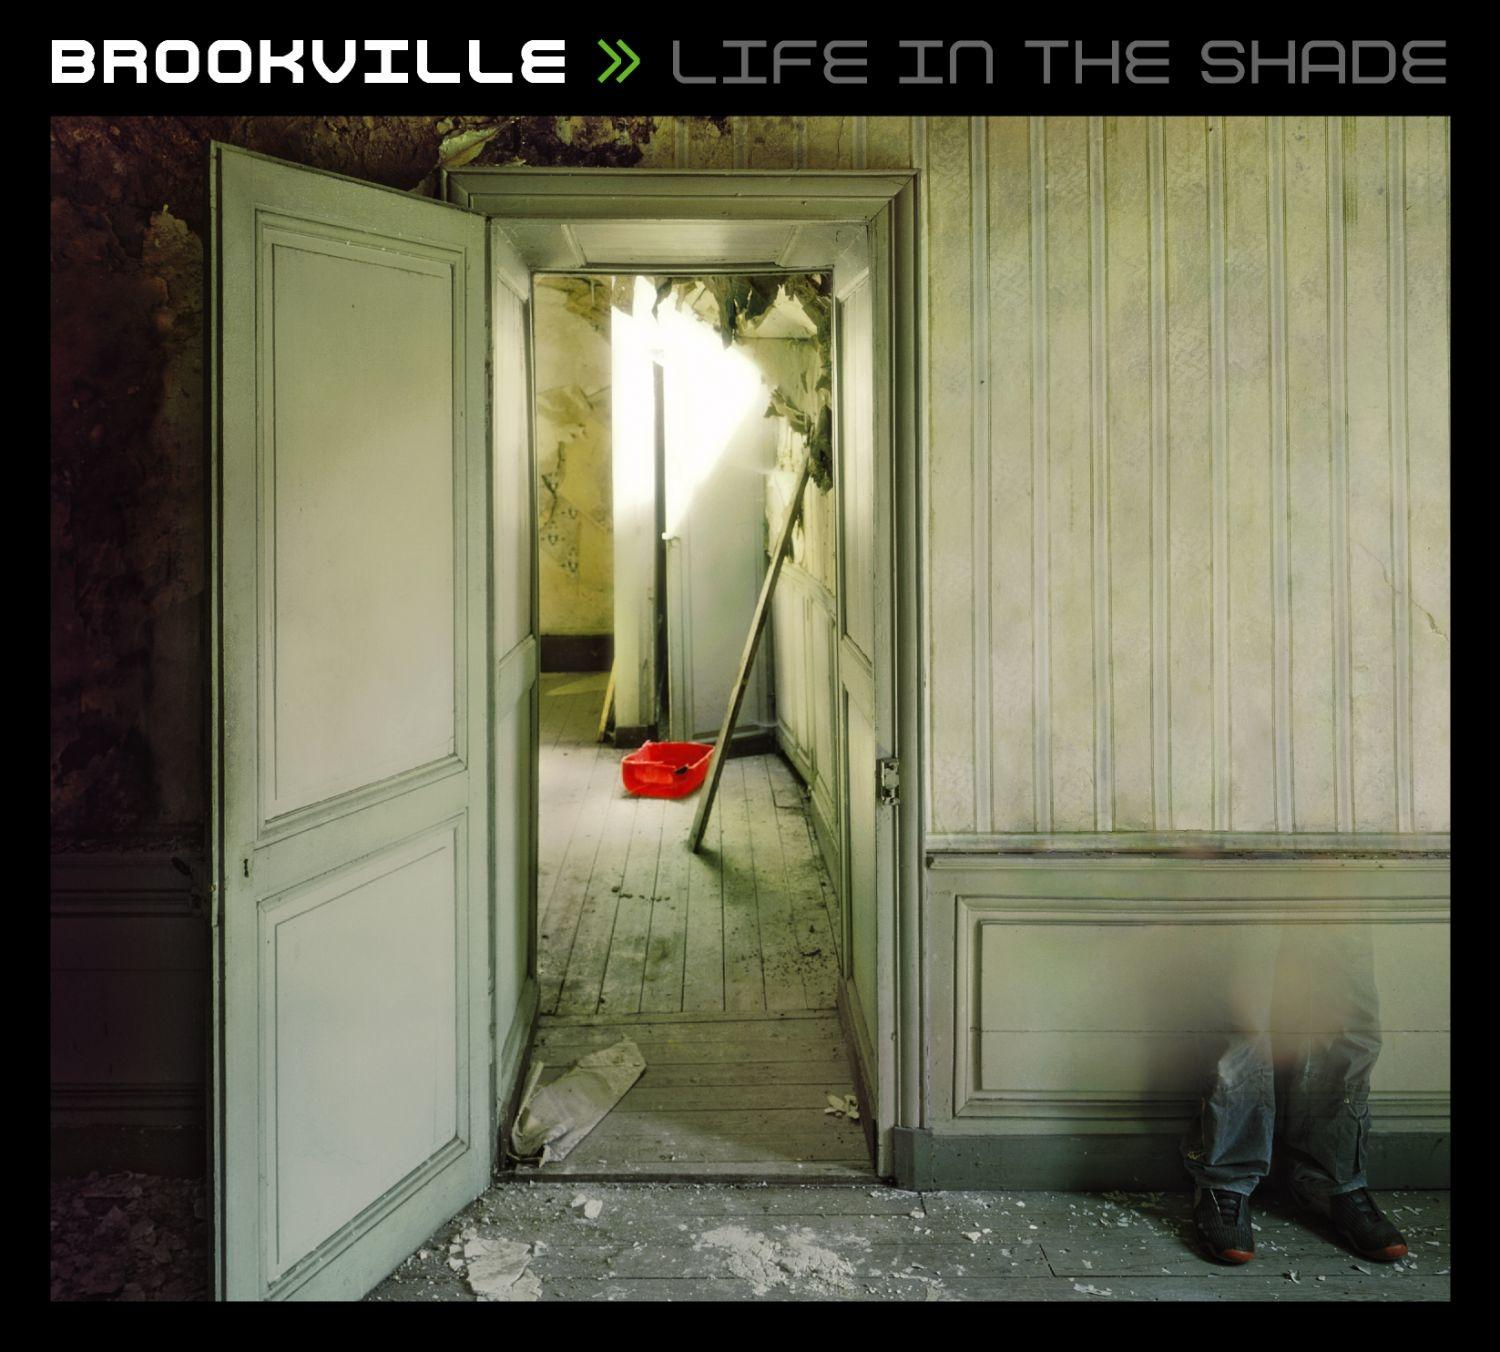 CD-Life in the shade / Brookville